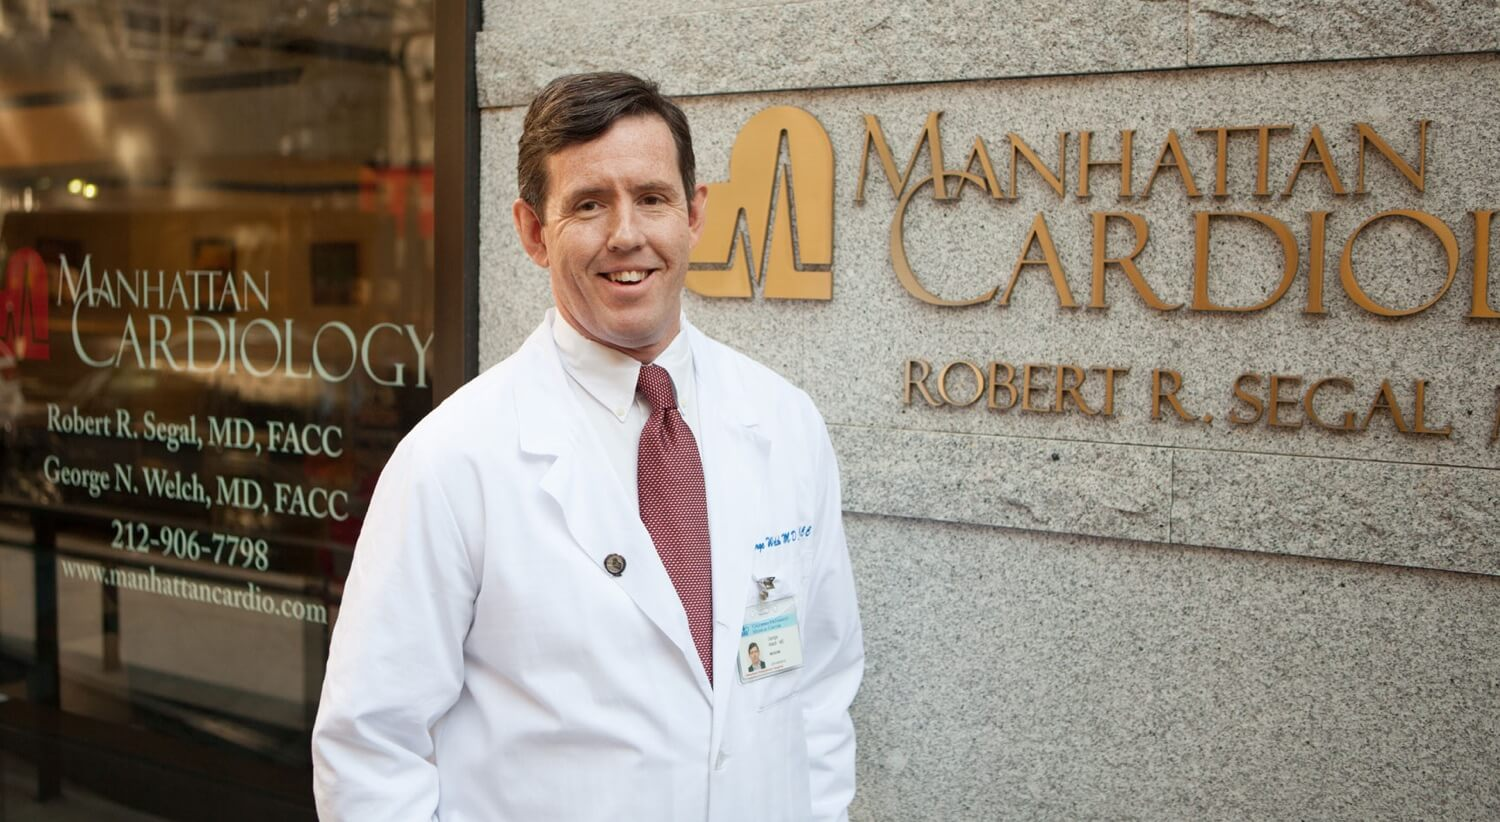 Manhattan-Cardiology-New-York-City-Cardiologists